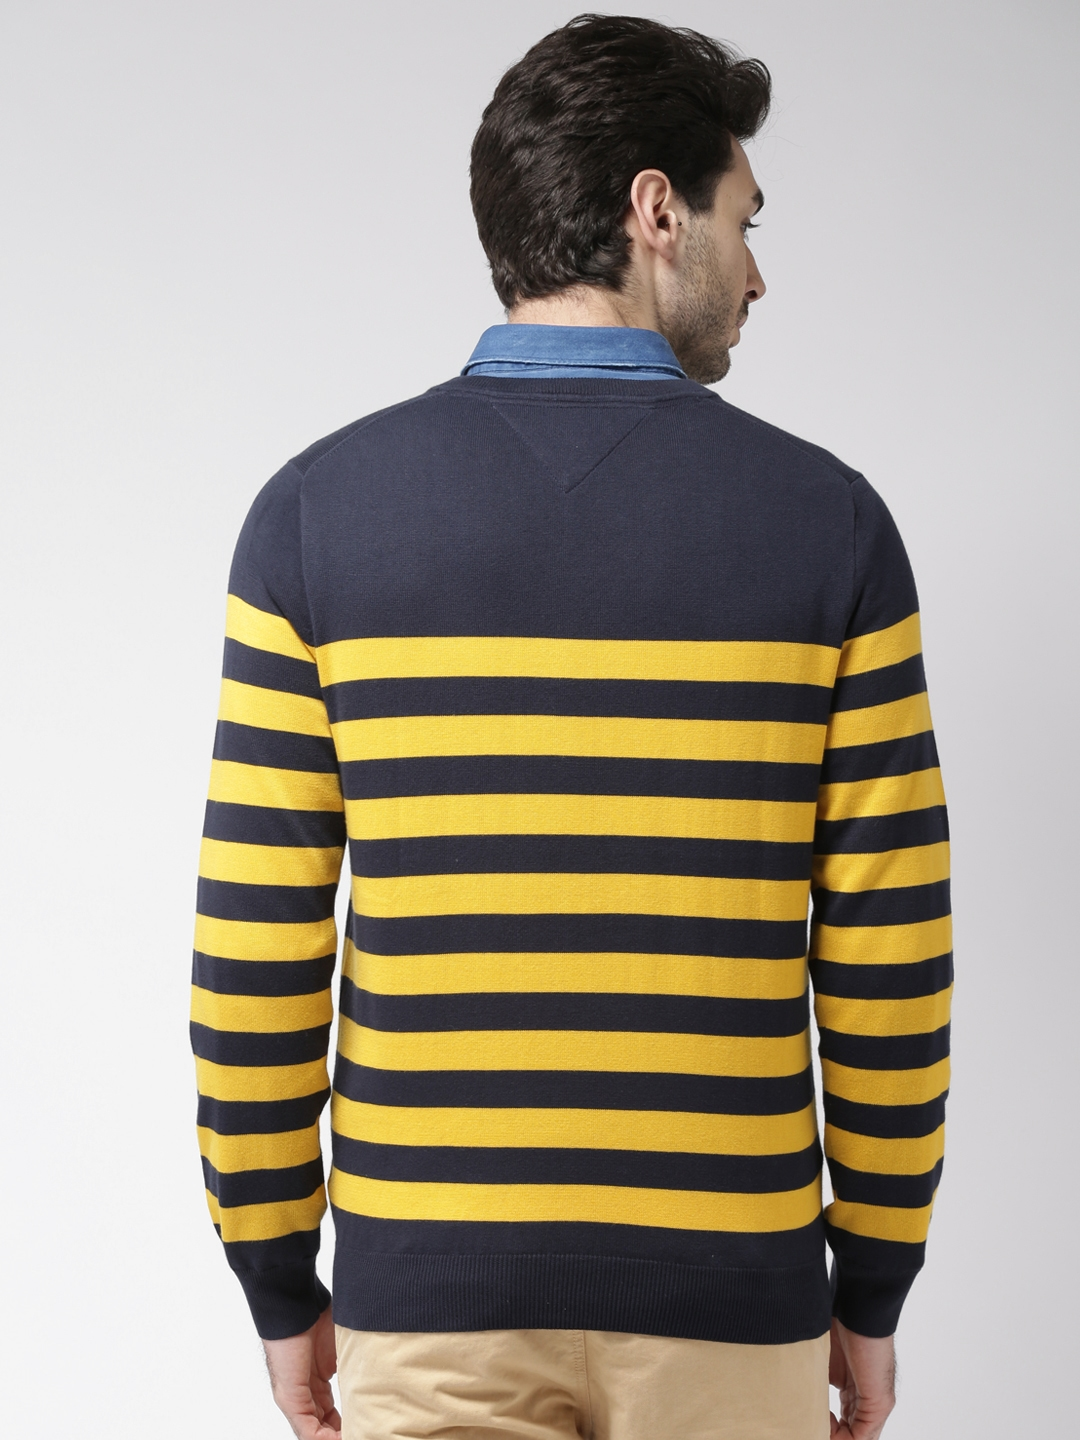 Buy Tommy Hilfiger Men Navy Blue Yellow Striped Sweater Sweaters